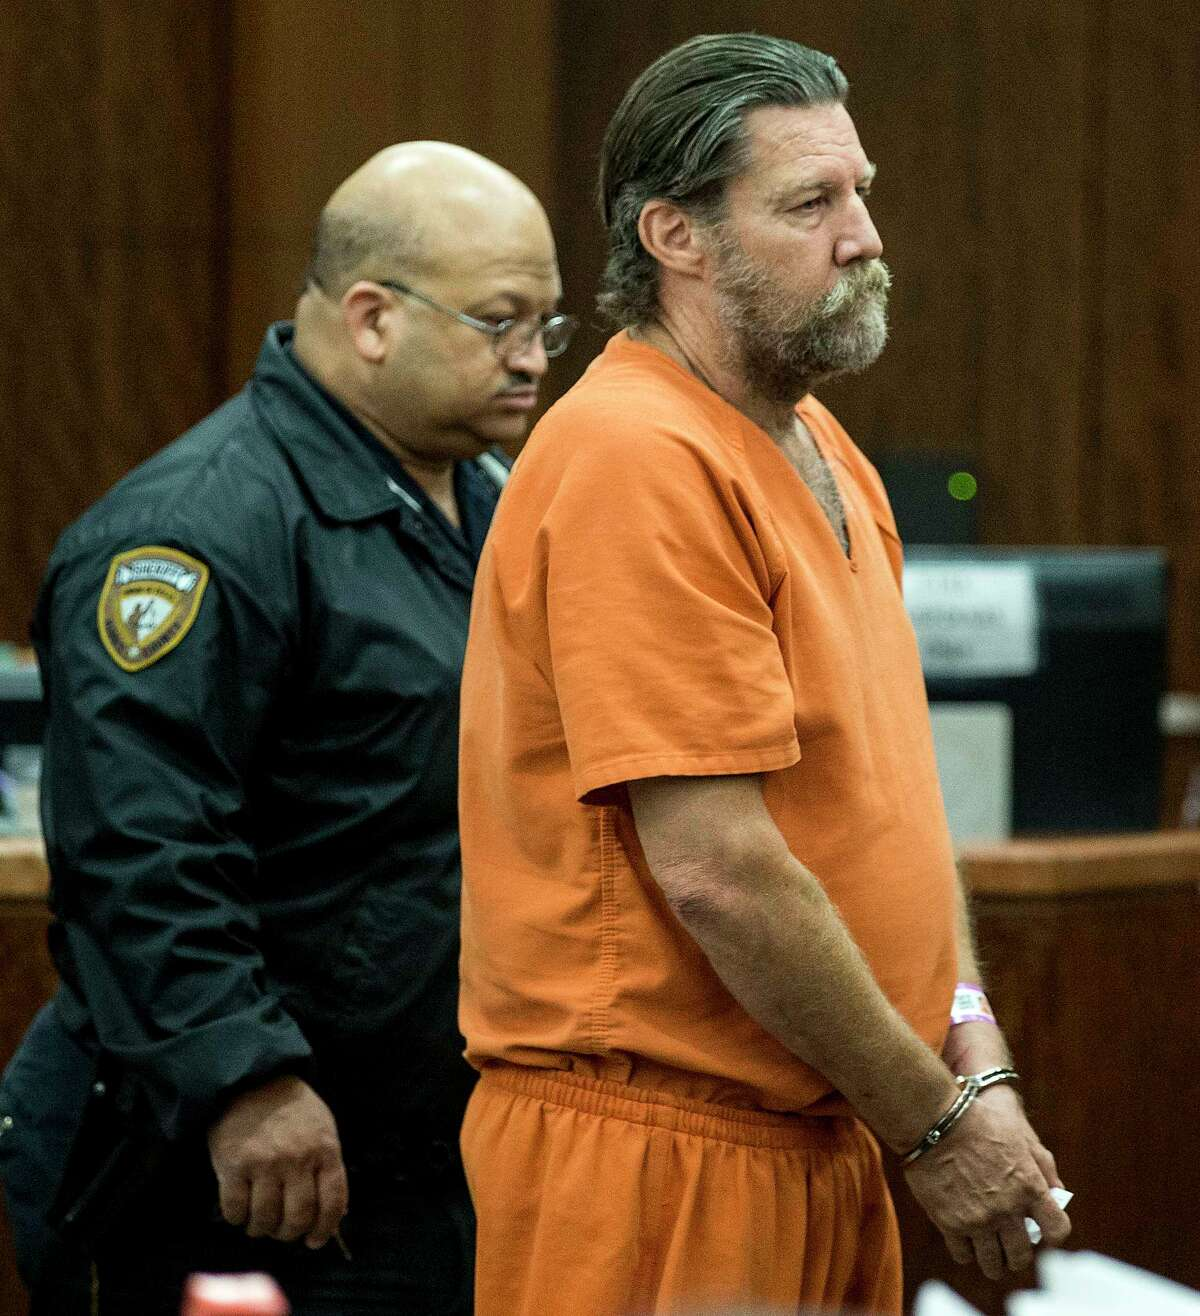 James Hickam, 58, appears in court on Monday, July 24, 2017, in Houston. Hickam is accused of murder after allegedly shooting a bystander while trying to shoot his wife.